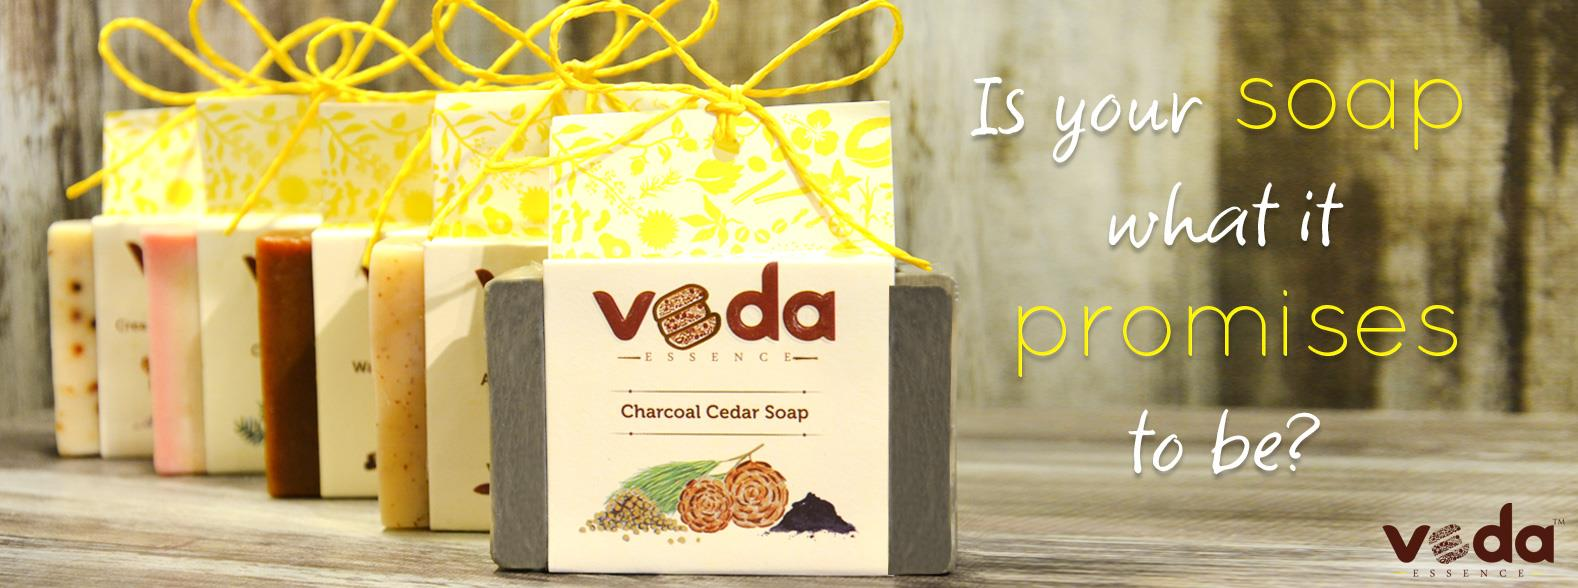 Veda Essence Purely on the idiom of #Ayurveda and has the vision to Spread the #benefits of #Ayurveda around the world. Therefore, Veda Essence brings purely #herbal #natural #handmade #skincare products which helps your skin to breath. Lets start with #BathingSoaps, Veda Essence has only the 30 varieties of #Handmade #BathingSoaps for different #skintypes. One Soap take #21days to get mould. Feel the experience of #luxurious #Bathing with Veda Essence handmade Soaps.  Click on 'Call Button' below or visit our website: https://goo.gl/Al1gsg